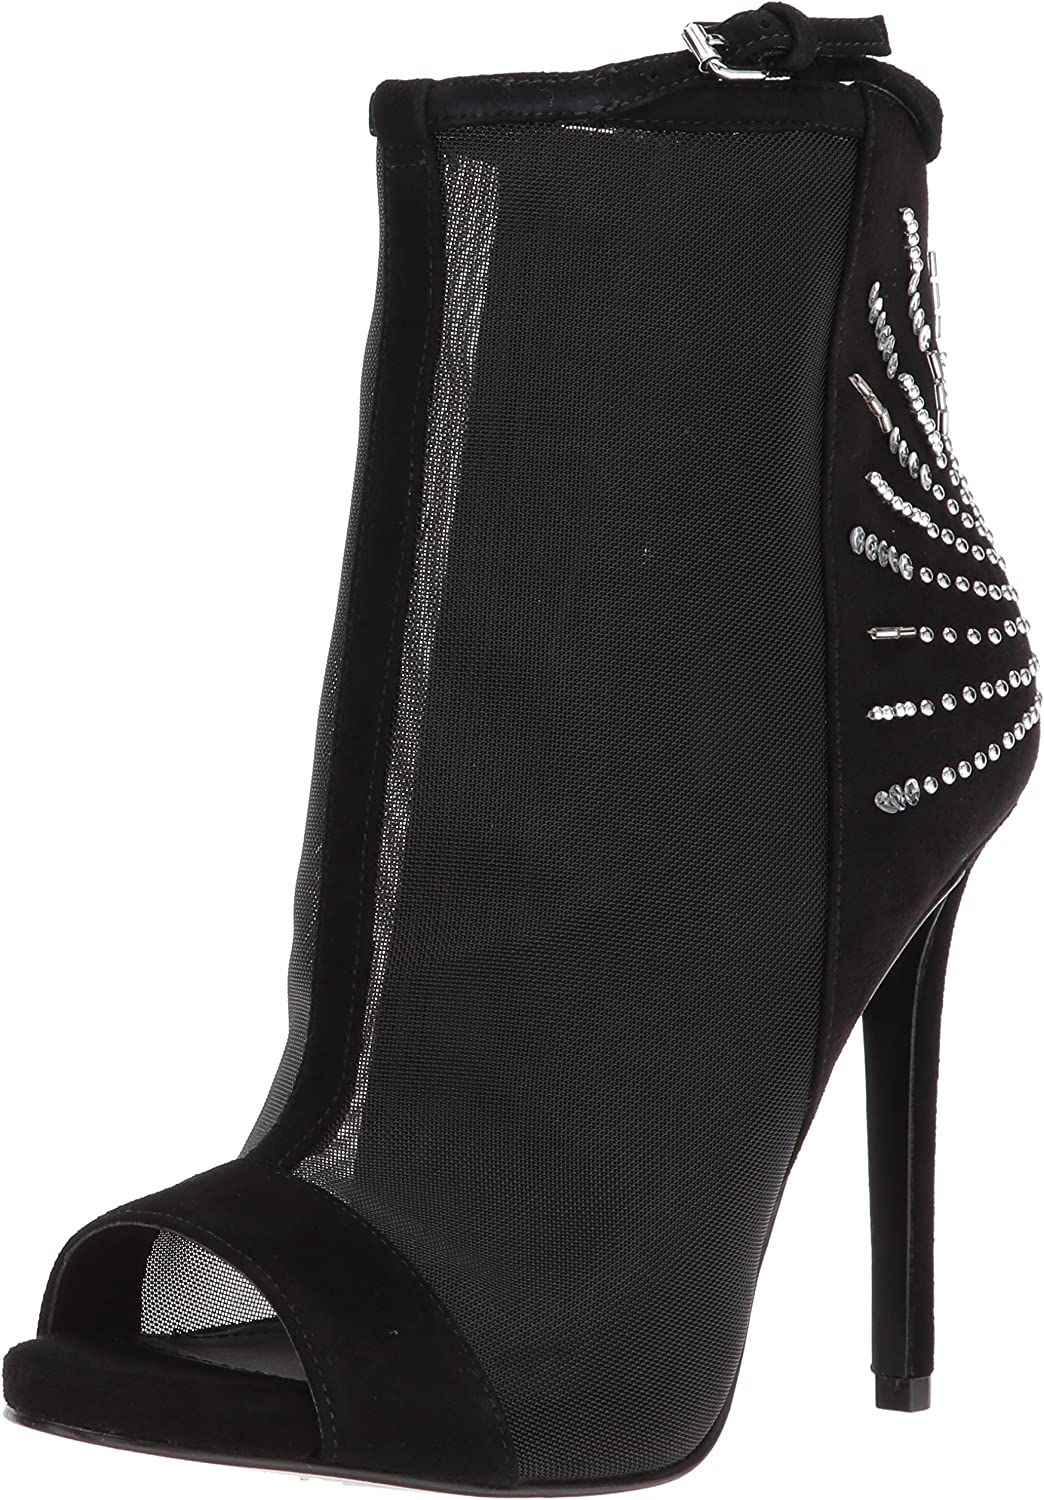 GUESS Womens Polli Ankle Boot